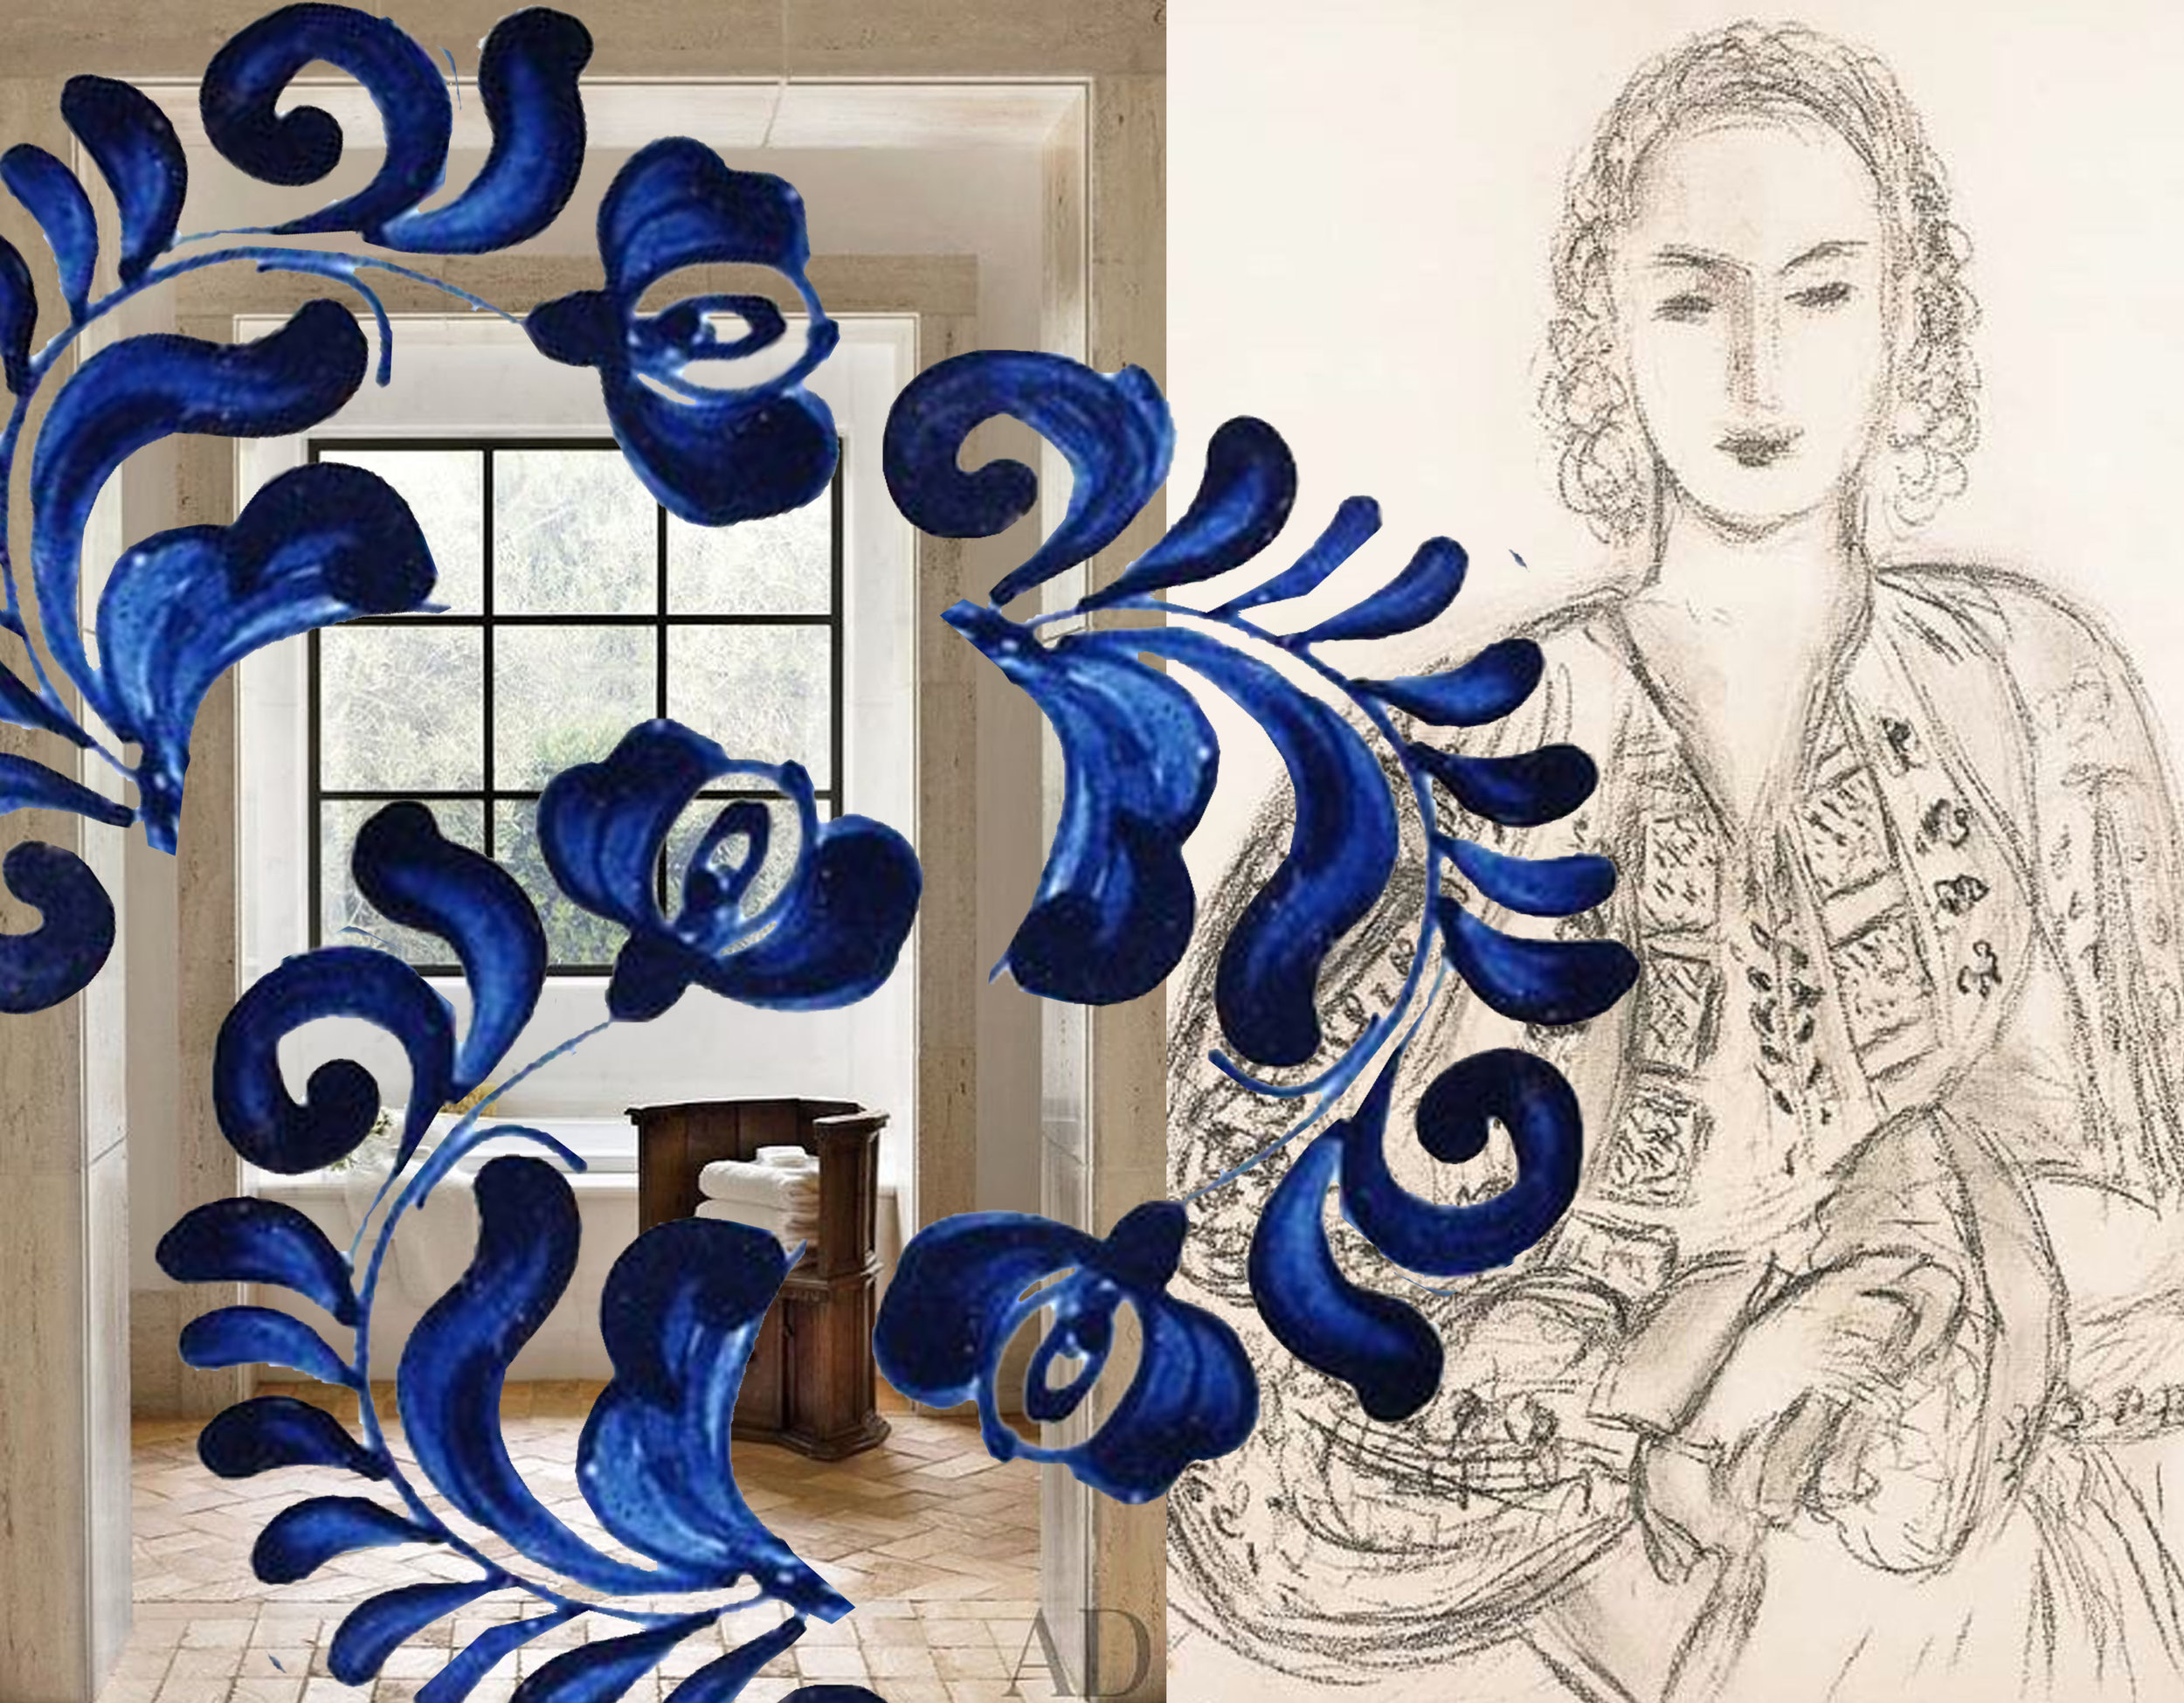 detail from traditional Romanian ceramic - drawing Matisse